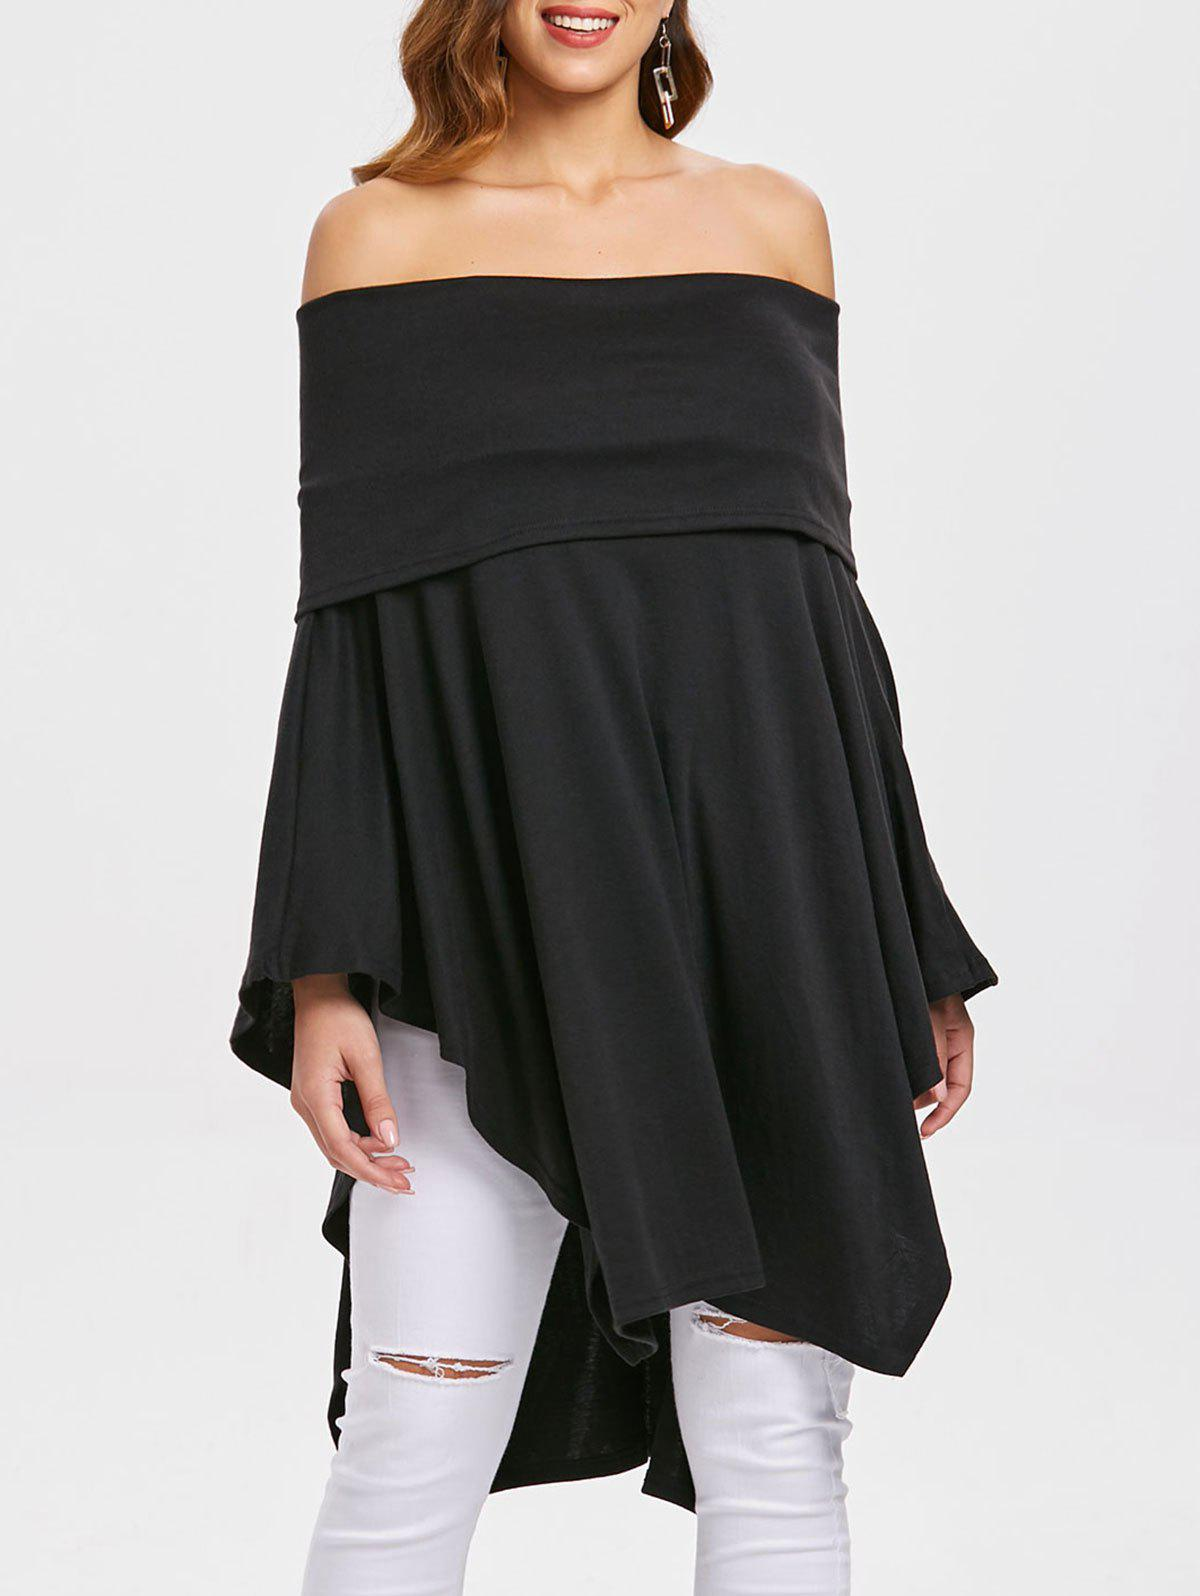 Women Fashion Pure Color Sexy Boat Neck Batwing Sleeve Irregular Knitwear Casual Loose Tops T-shirts - BLACK M